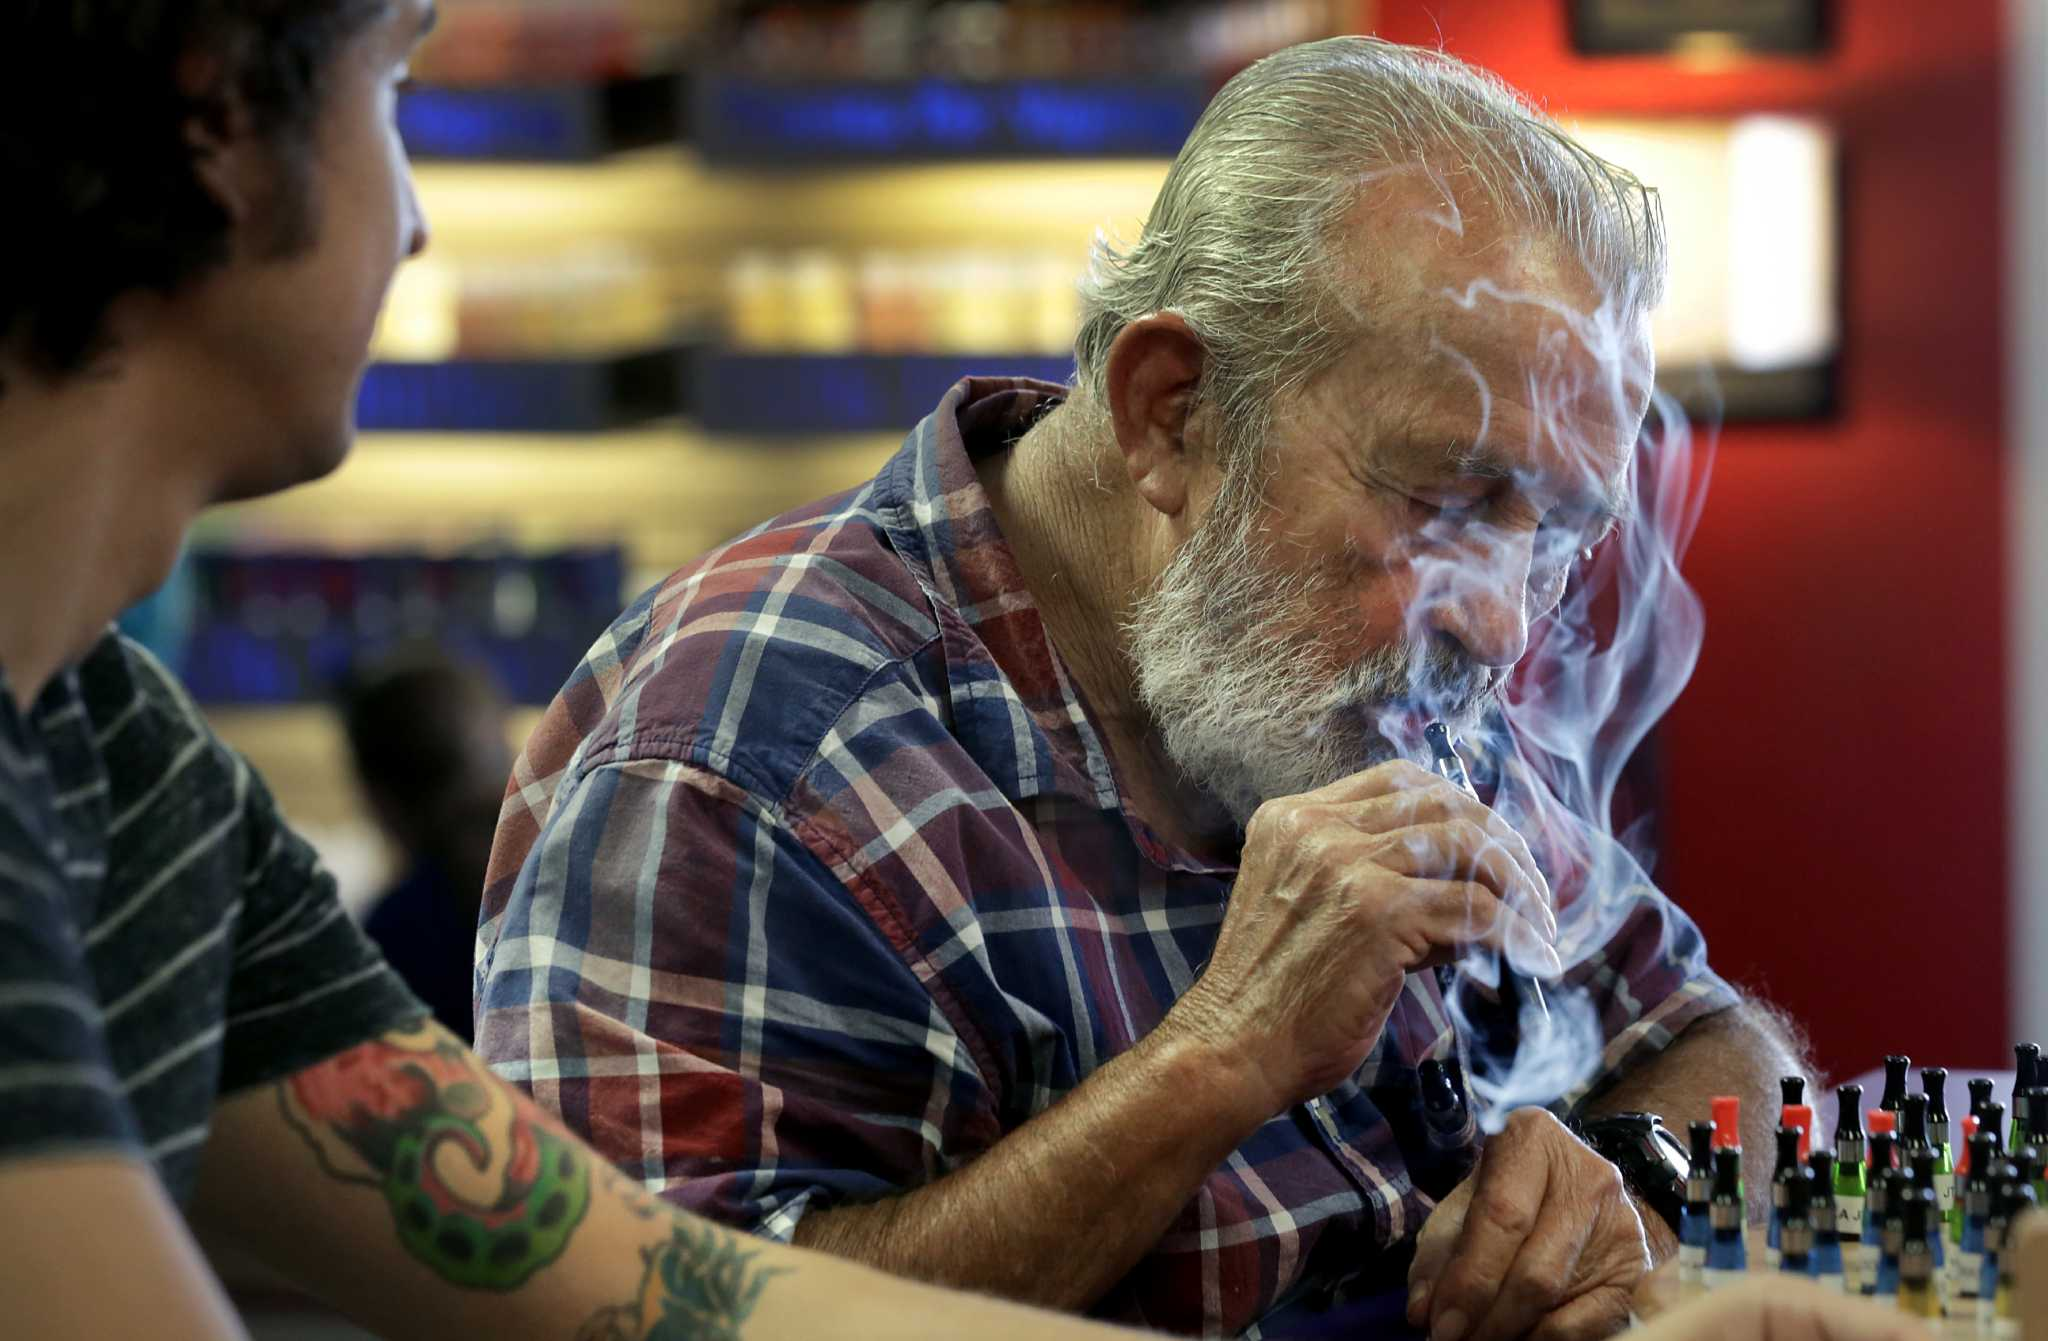 E Cigarettes Healthy Alternative Or Danger In Disguise